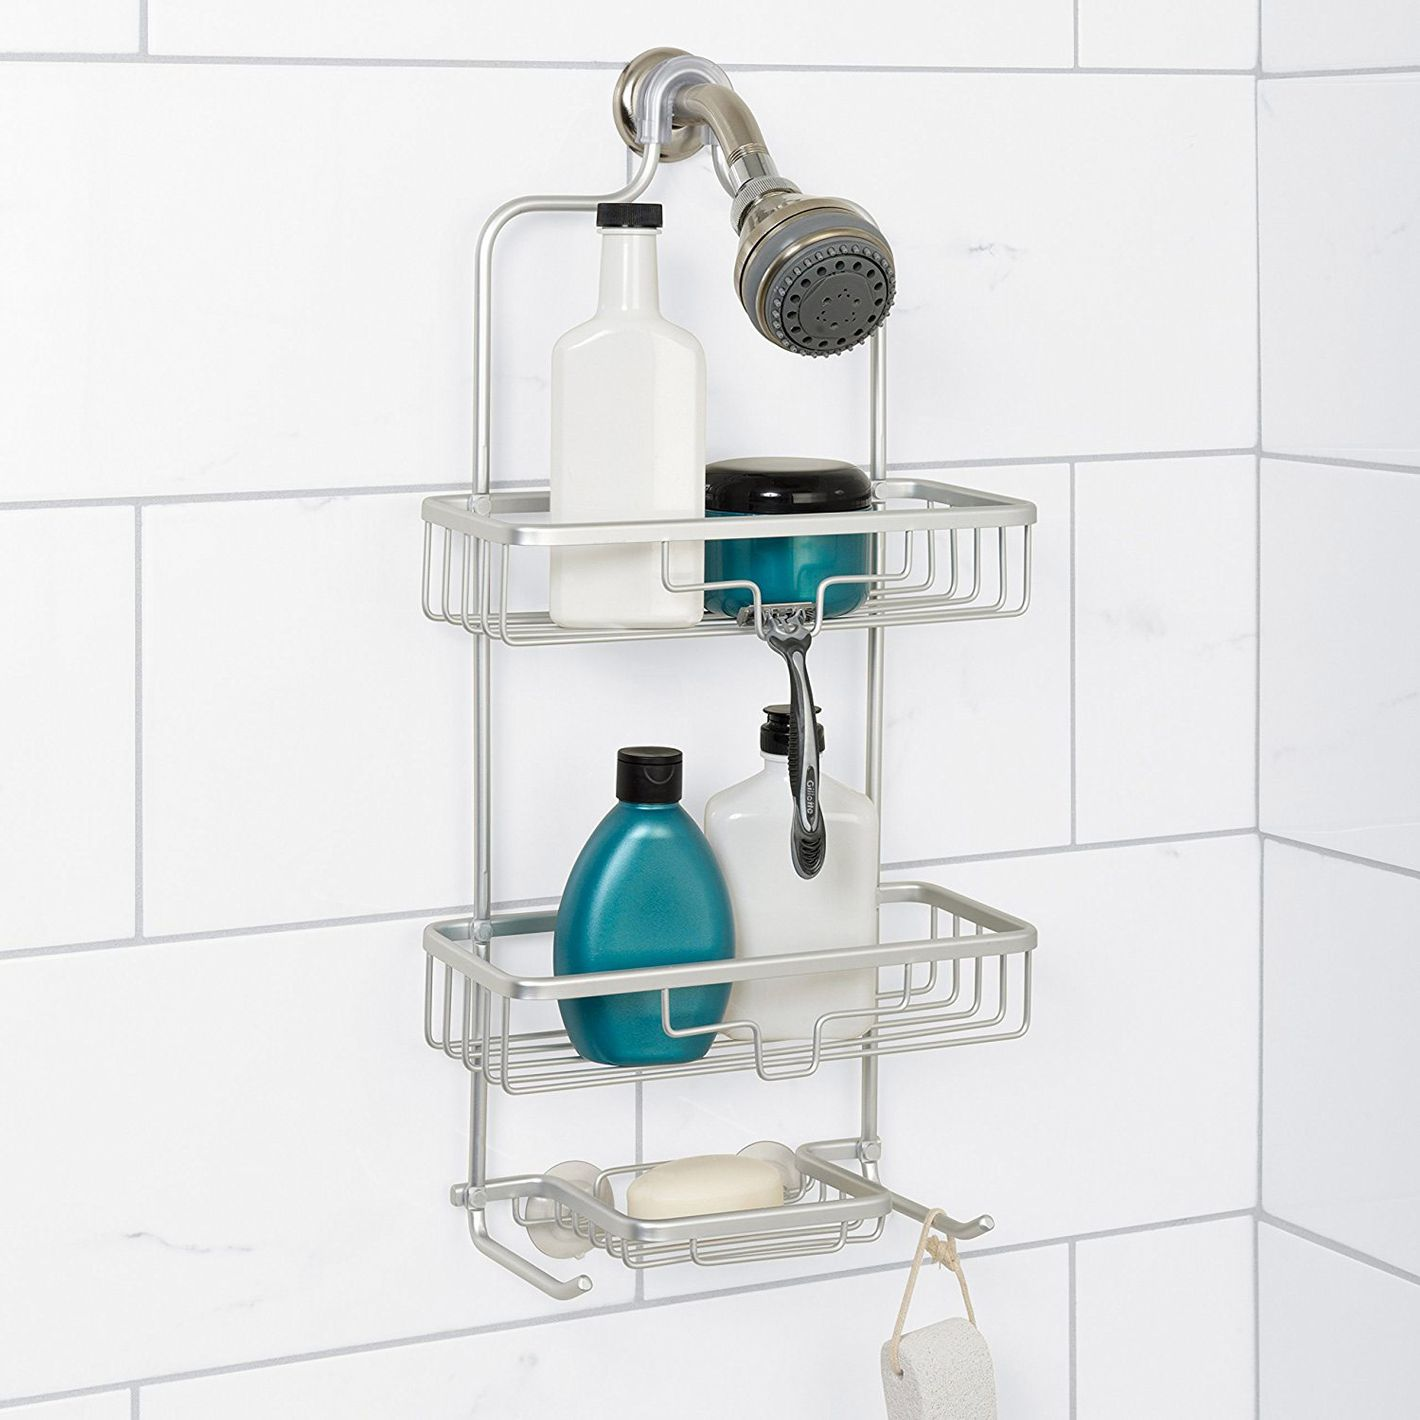 Zenna Home 7402AL, NeverRust Aluminum Shower Caddy, Satin Chrome